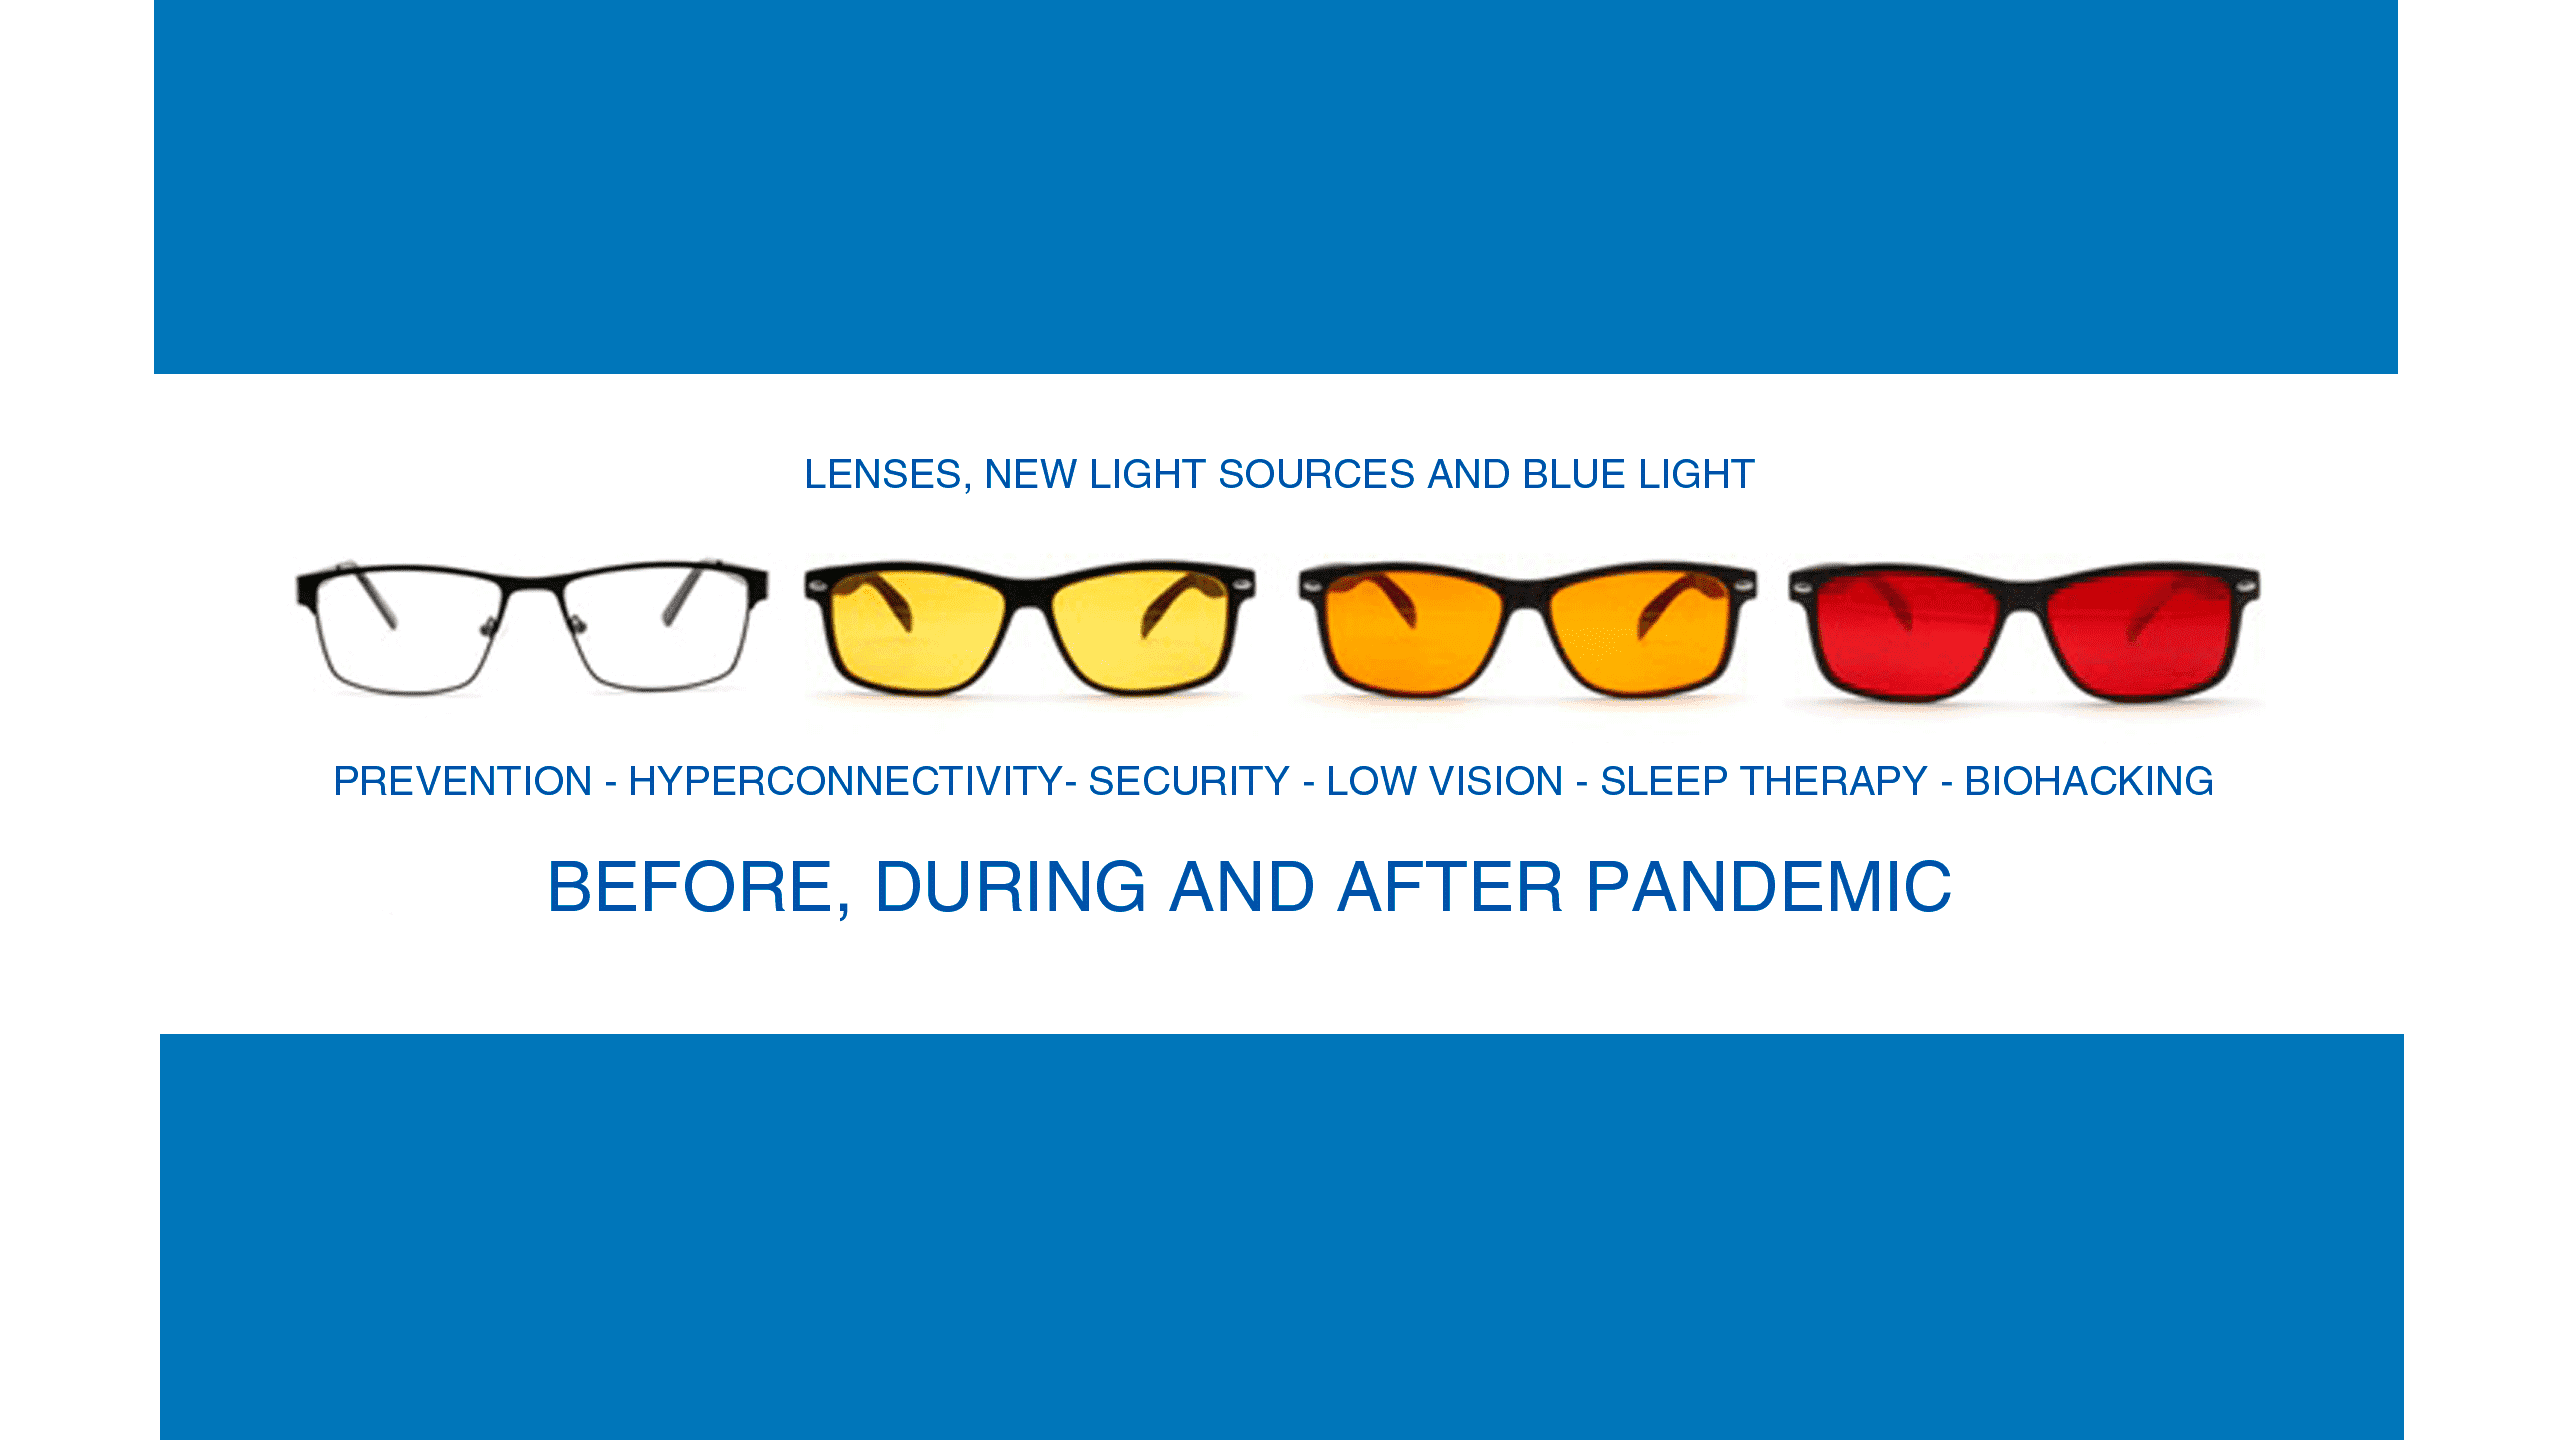 Lenses: before, during and after pandemic